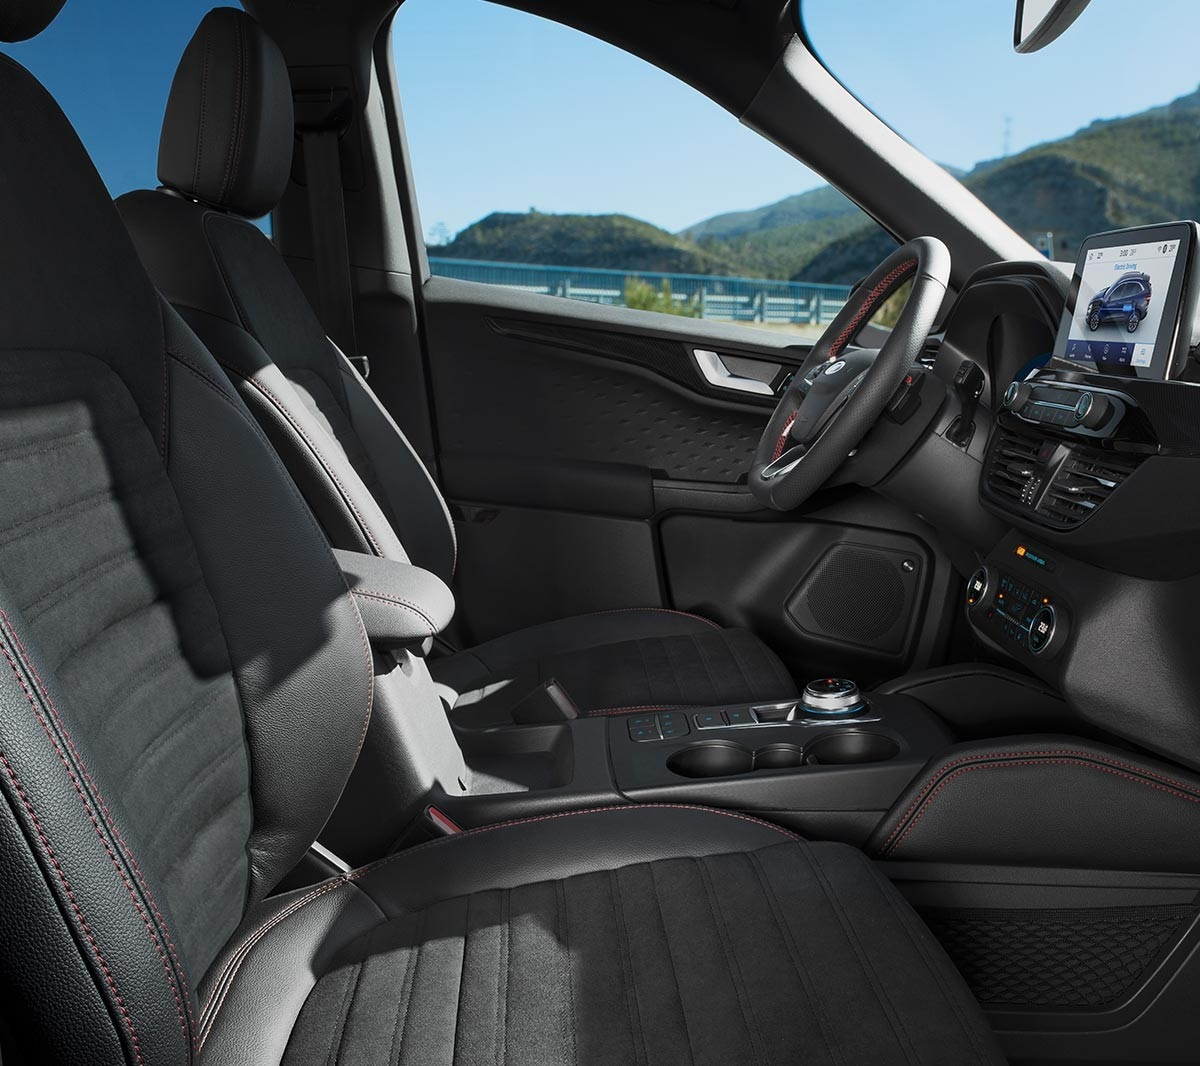 All New Ford Kuga interior showing steering wheel, SYNC3 and leather seats